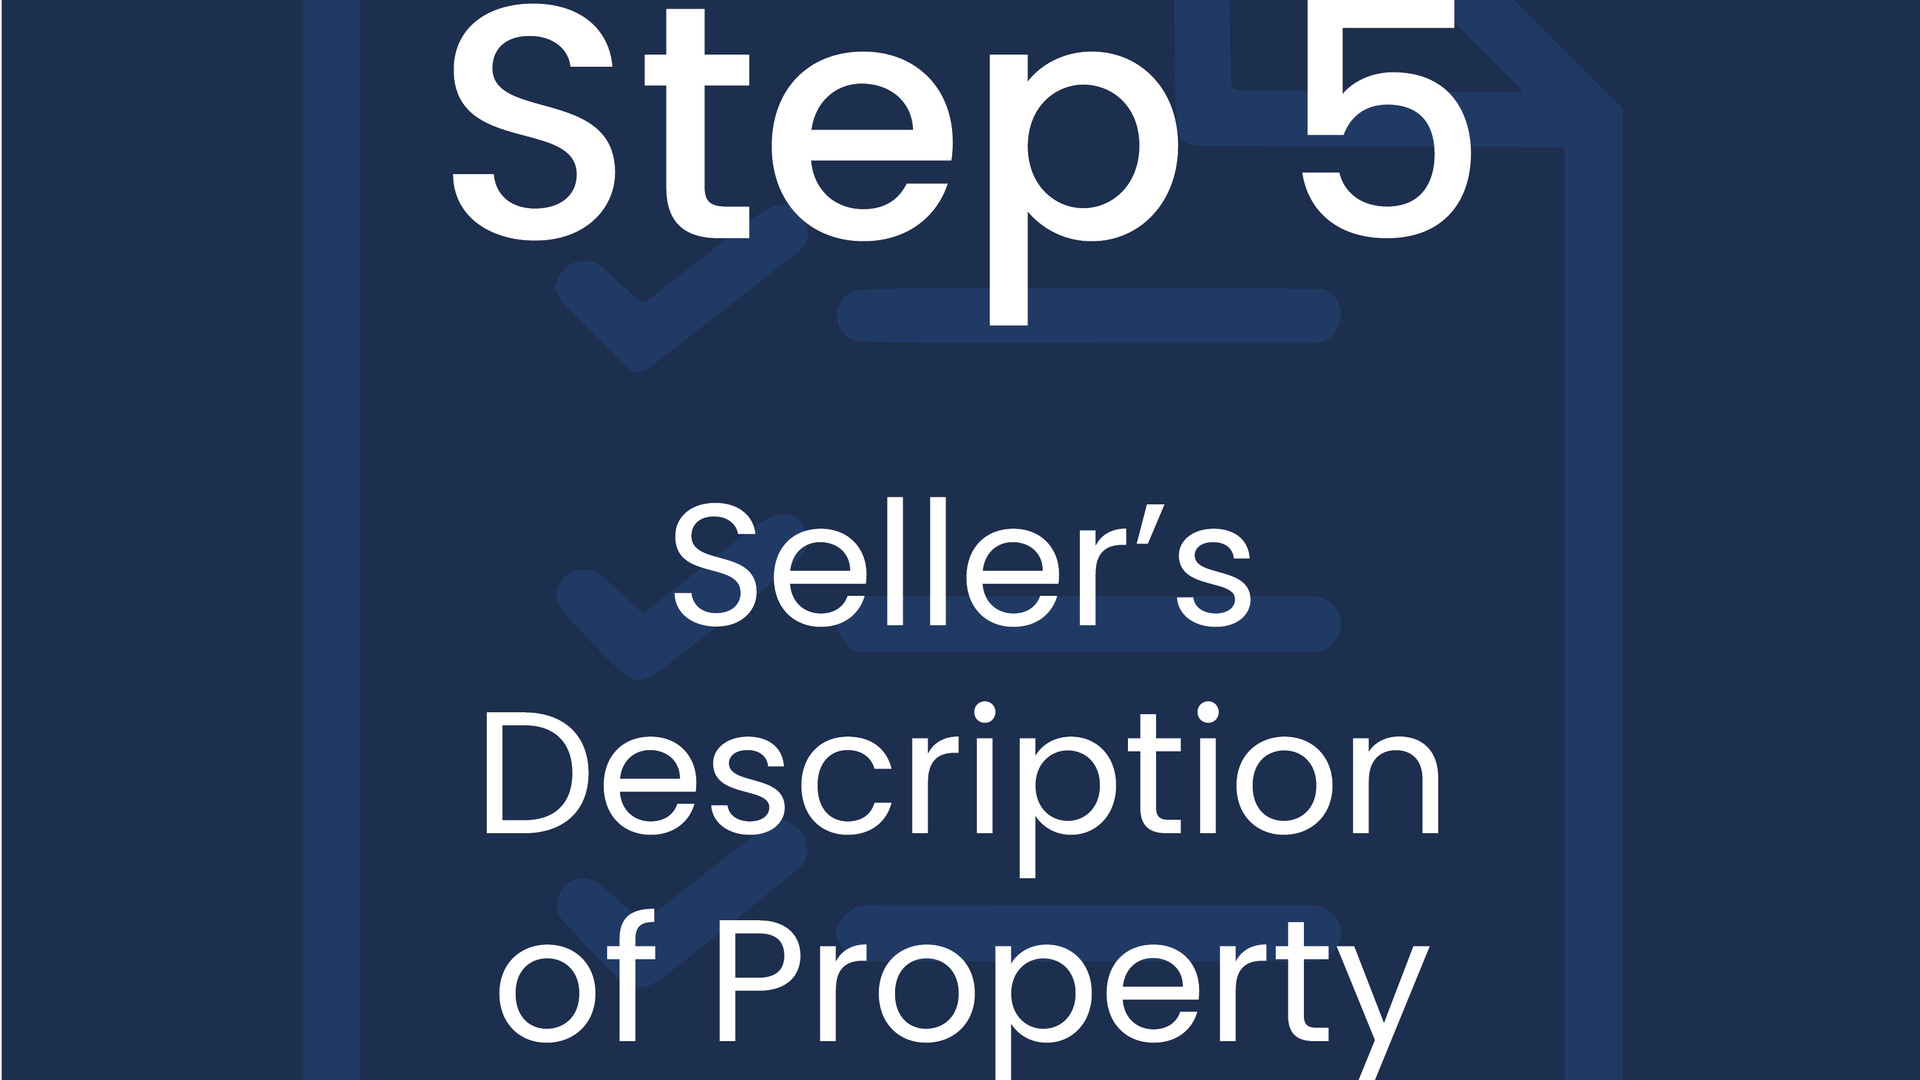 Step 5: Seller's Description of Property